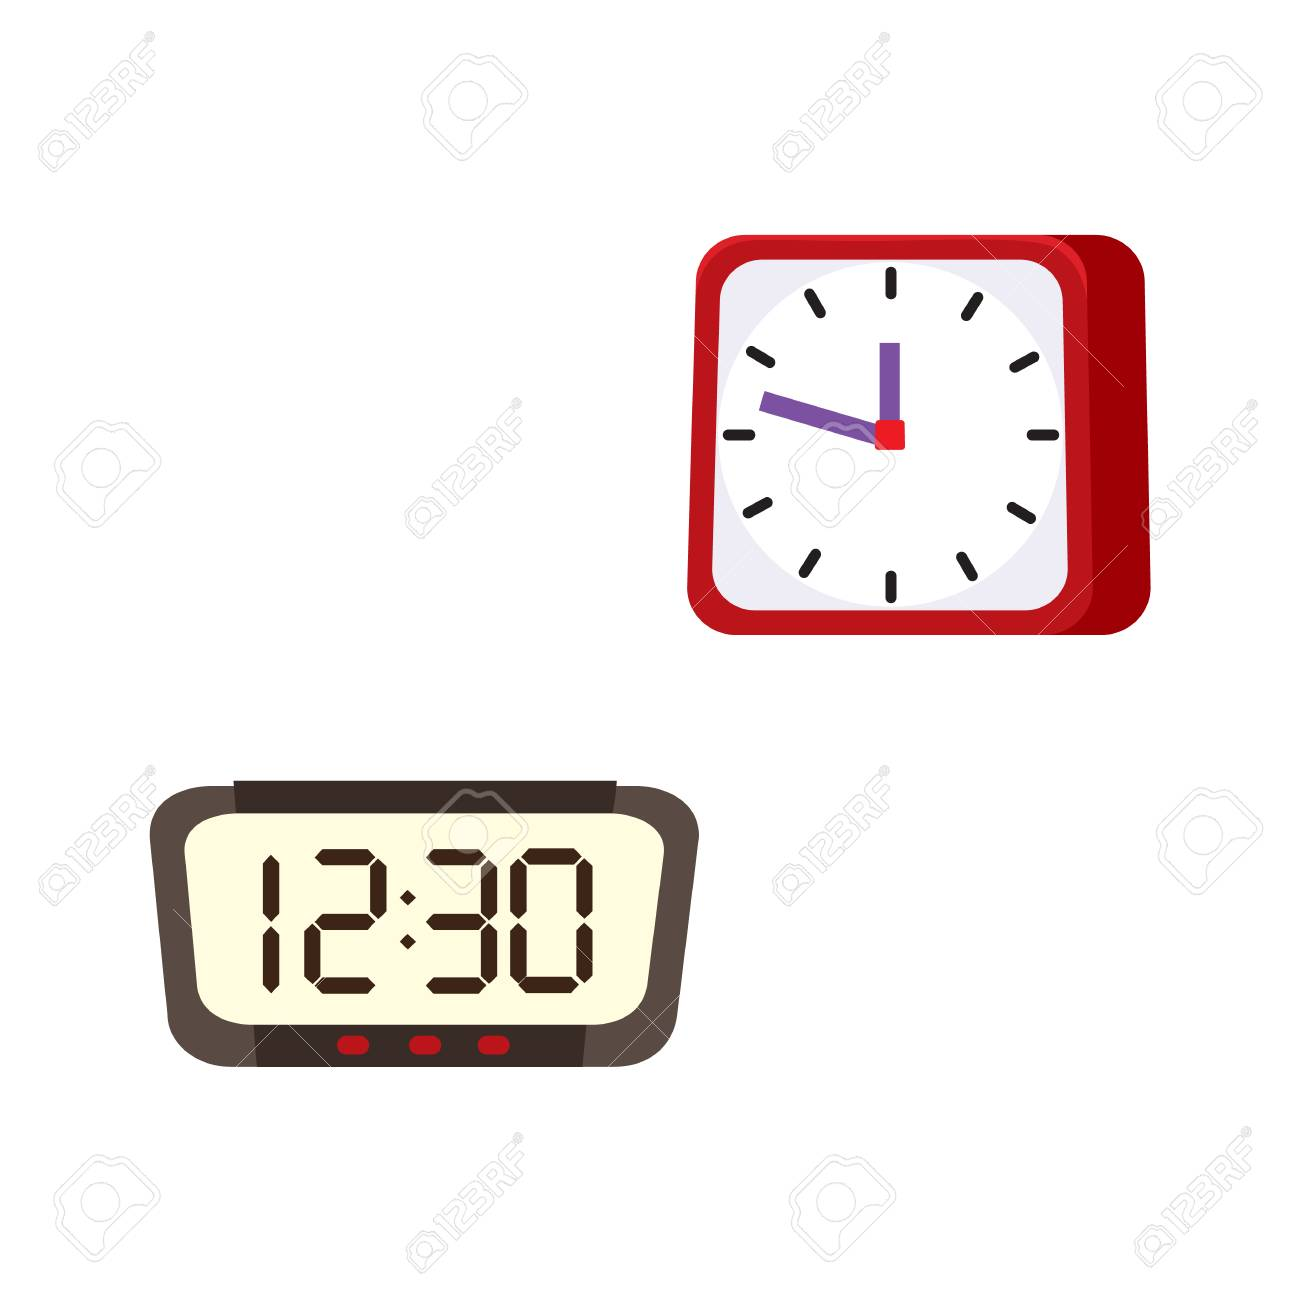 Simple Modern Alarm Clock Vector Flat Analog Digital Square Rectangle Table Simple Modern